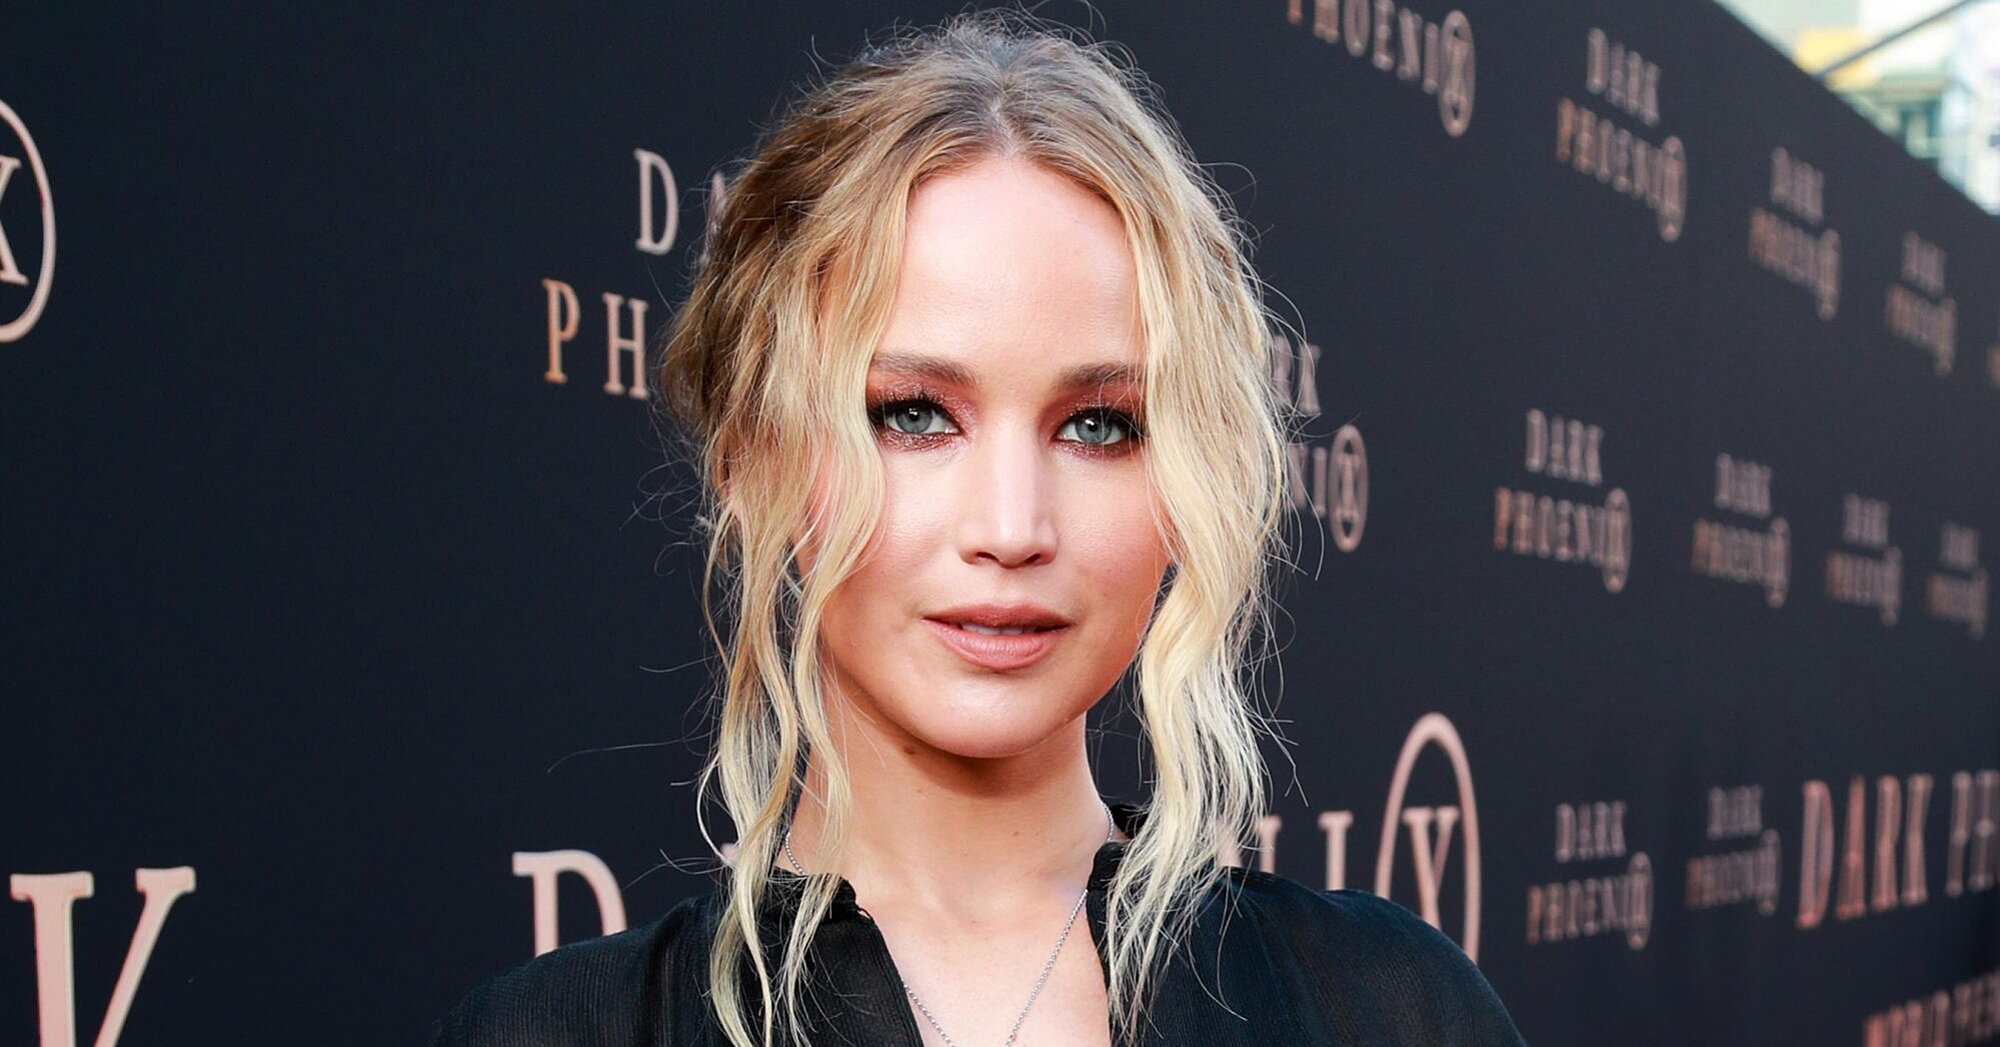 Jennifer Lawrence and other celebrities push for vote-at-home access